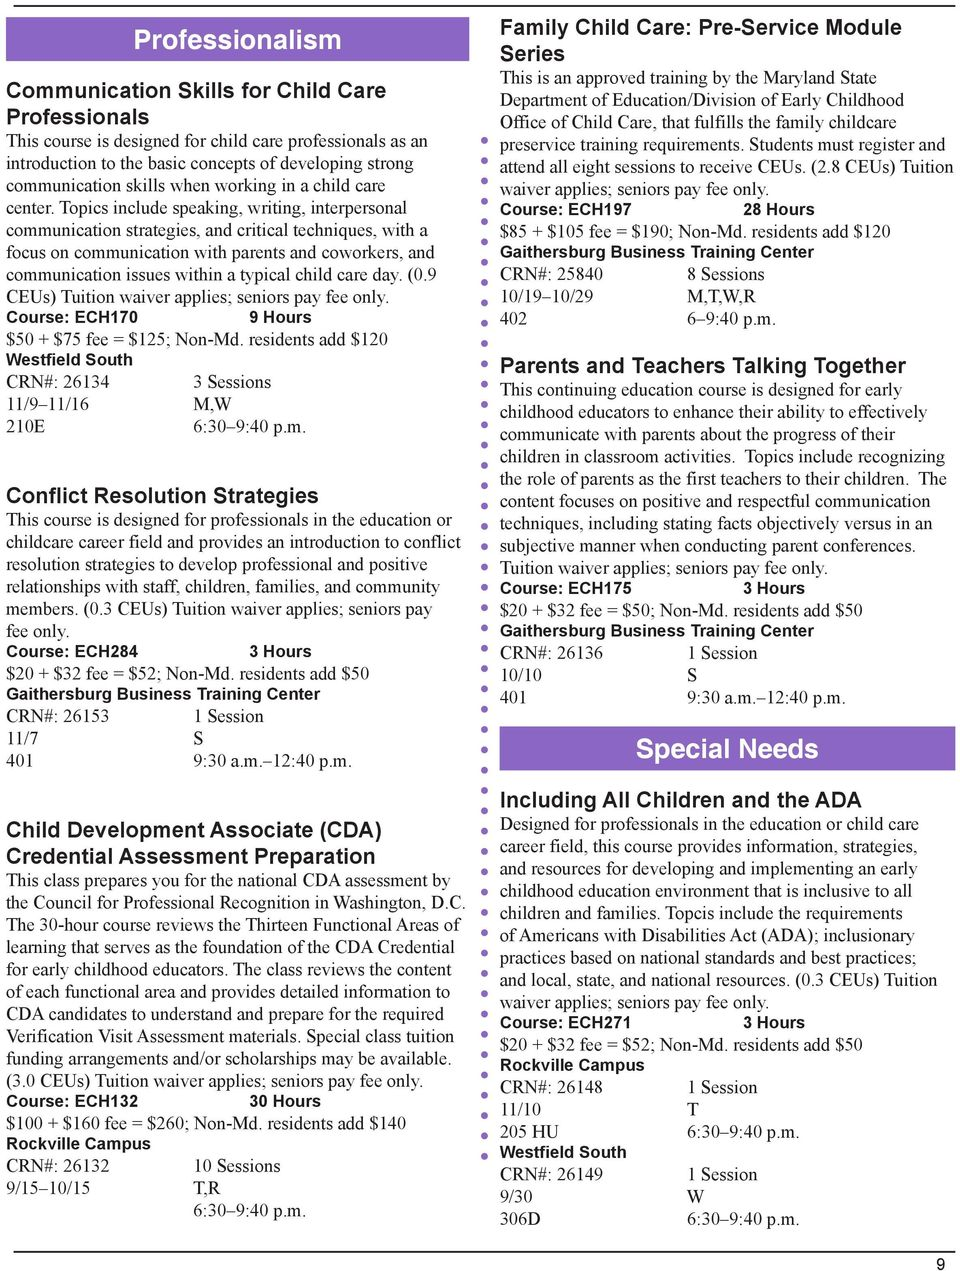 Topics include speaking, writing, interpersonal communication strategies, and critical techniques, with a focus on communication with parents and coworkers, and communication issues within a typical